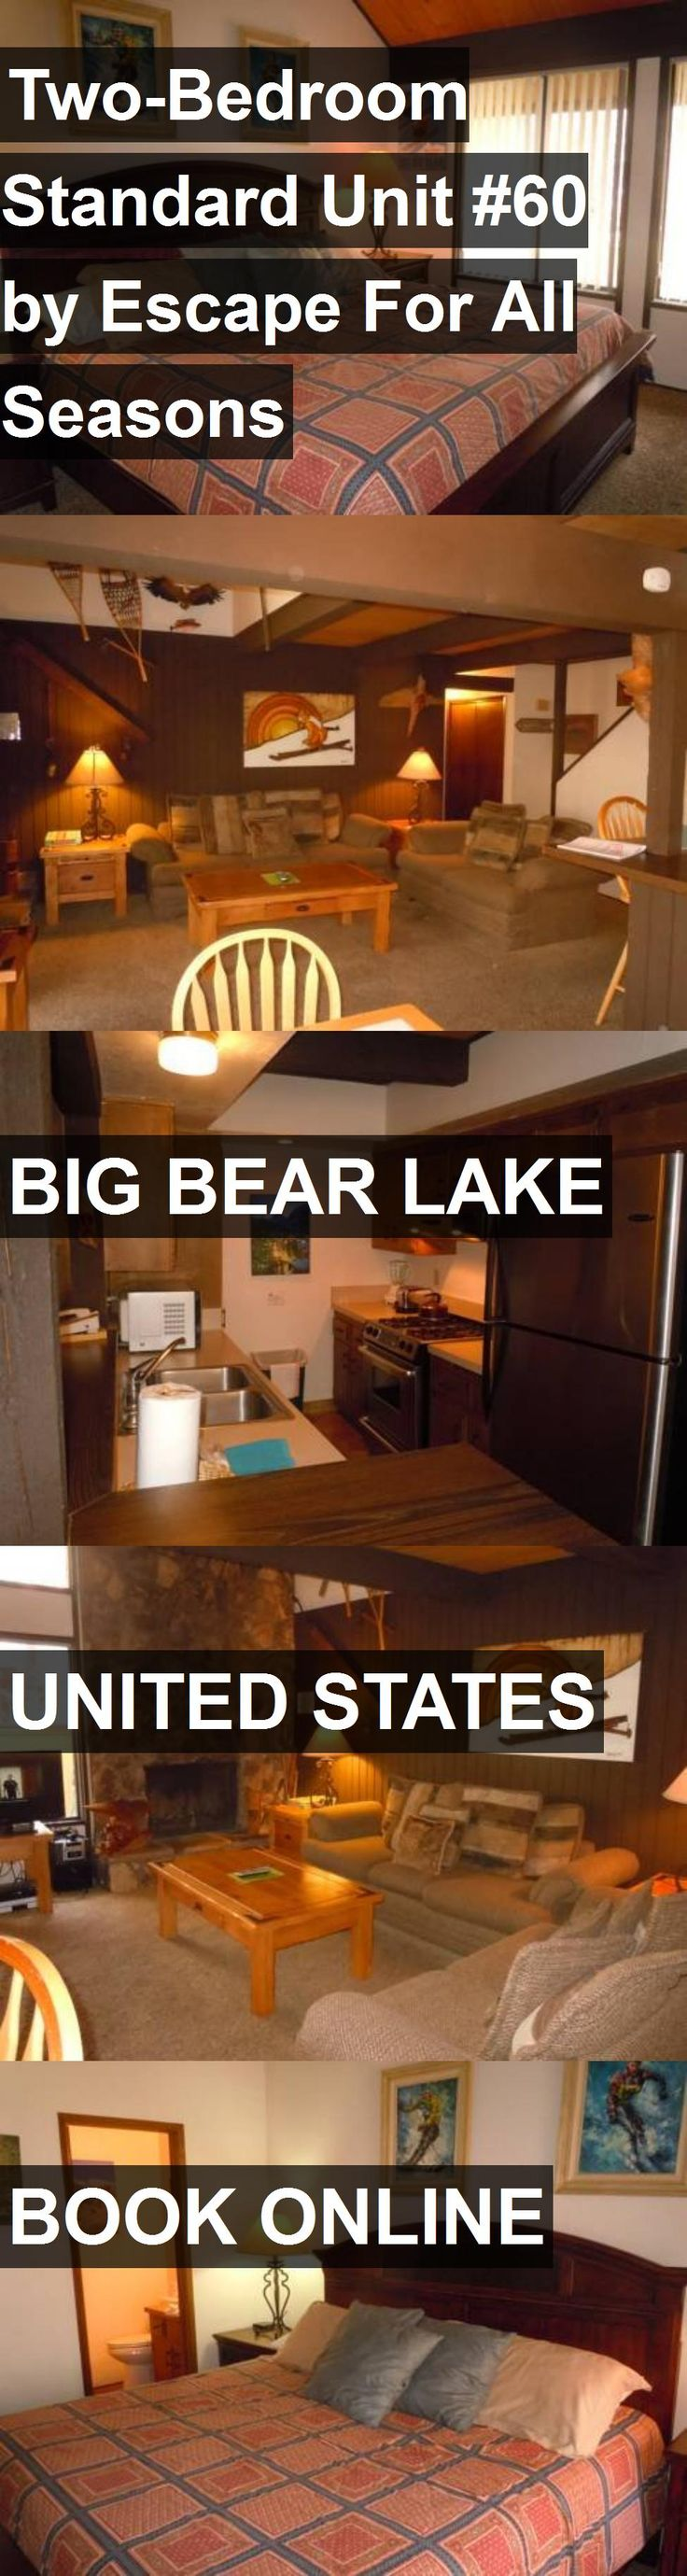 Hotel Two-Bedroom Standard Unit #60 by Escape For All Seasons in Big Bear Lake, United States. For more information, photos, reviews and best prices please follow the link. #UnitedStates #BigBearLake #travel #vacation #hotel